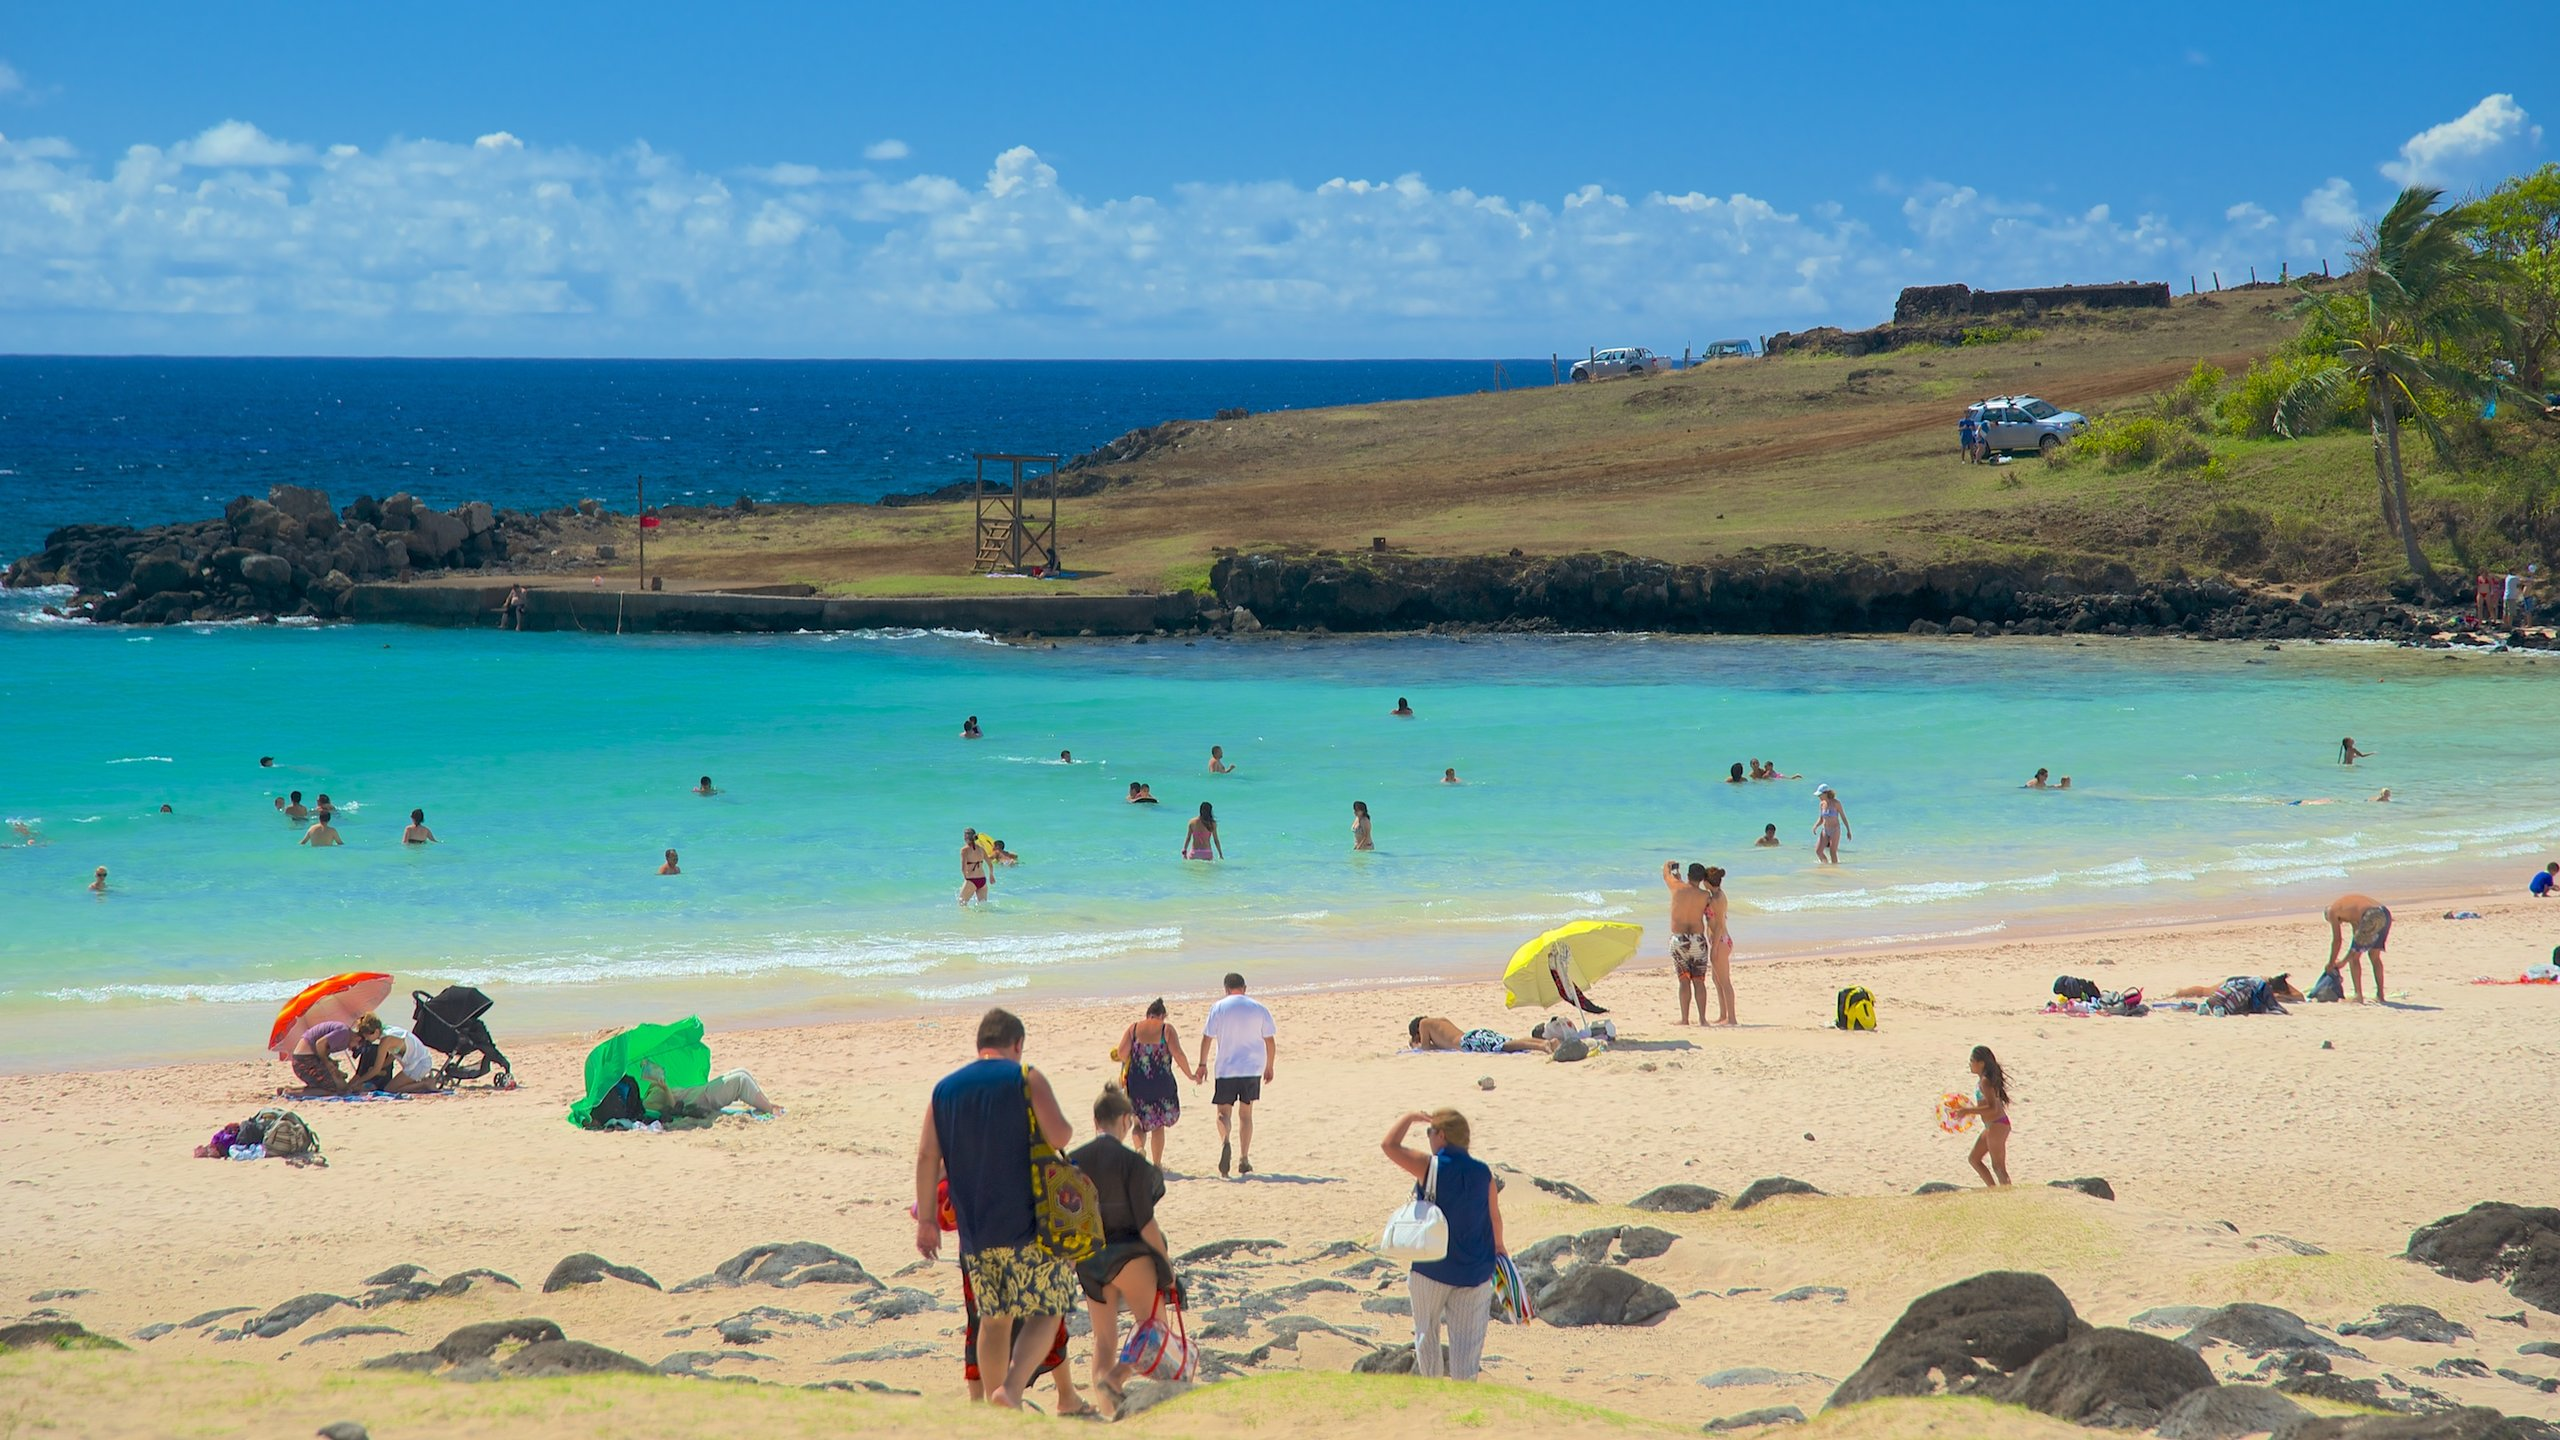 Relax on this sandy shoreline and learn about its history as the likely entry point for Easter Island's first settlers many centuries ago.